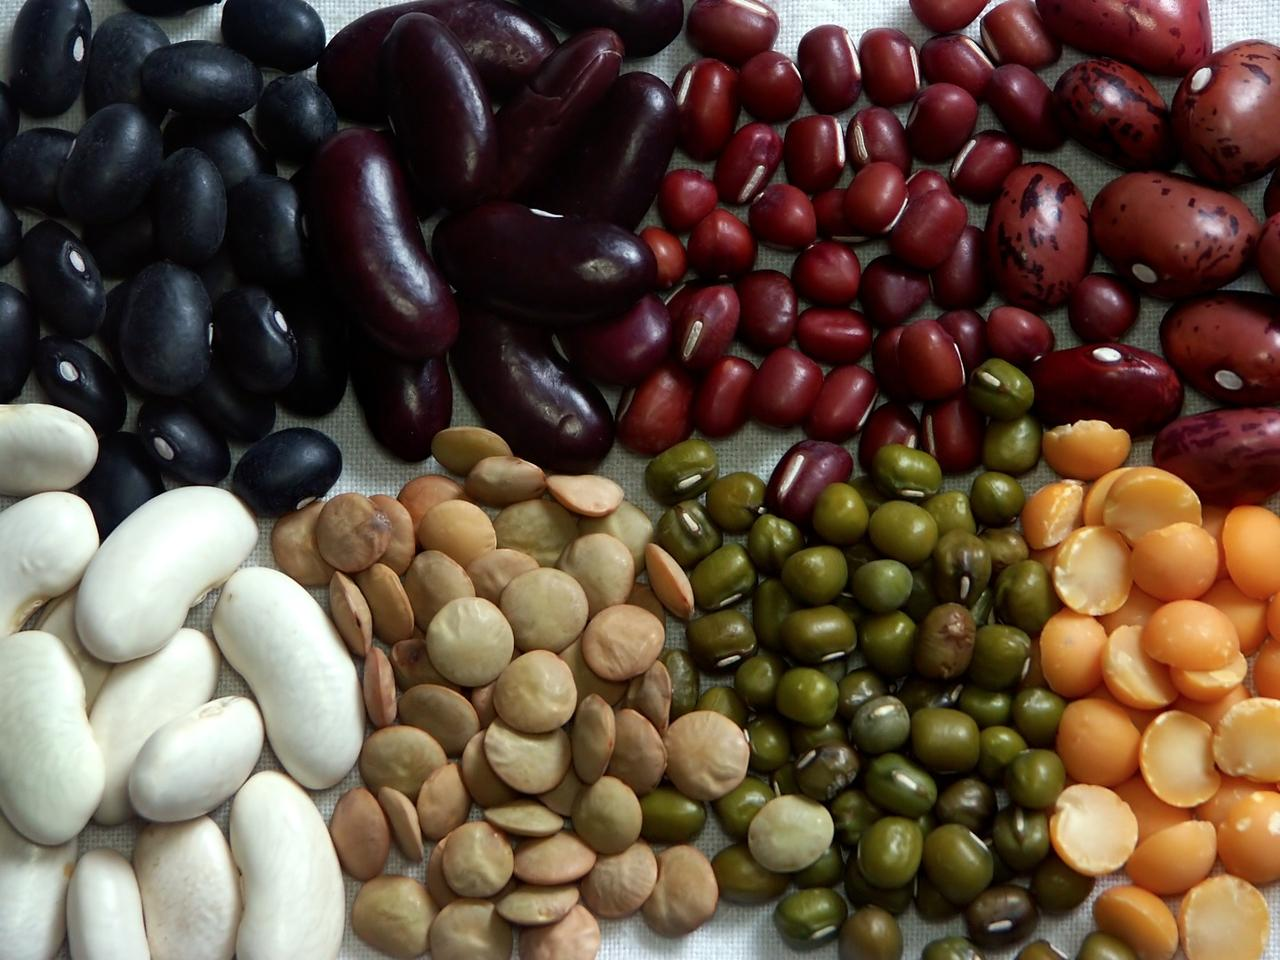 The researchers calculate that if the entire US were to swap out beef for beans, it would cut C02 emissions by 334 million metric tons